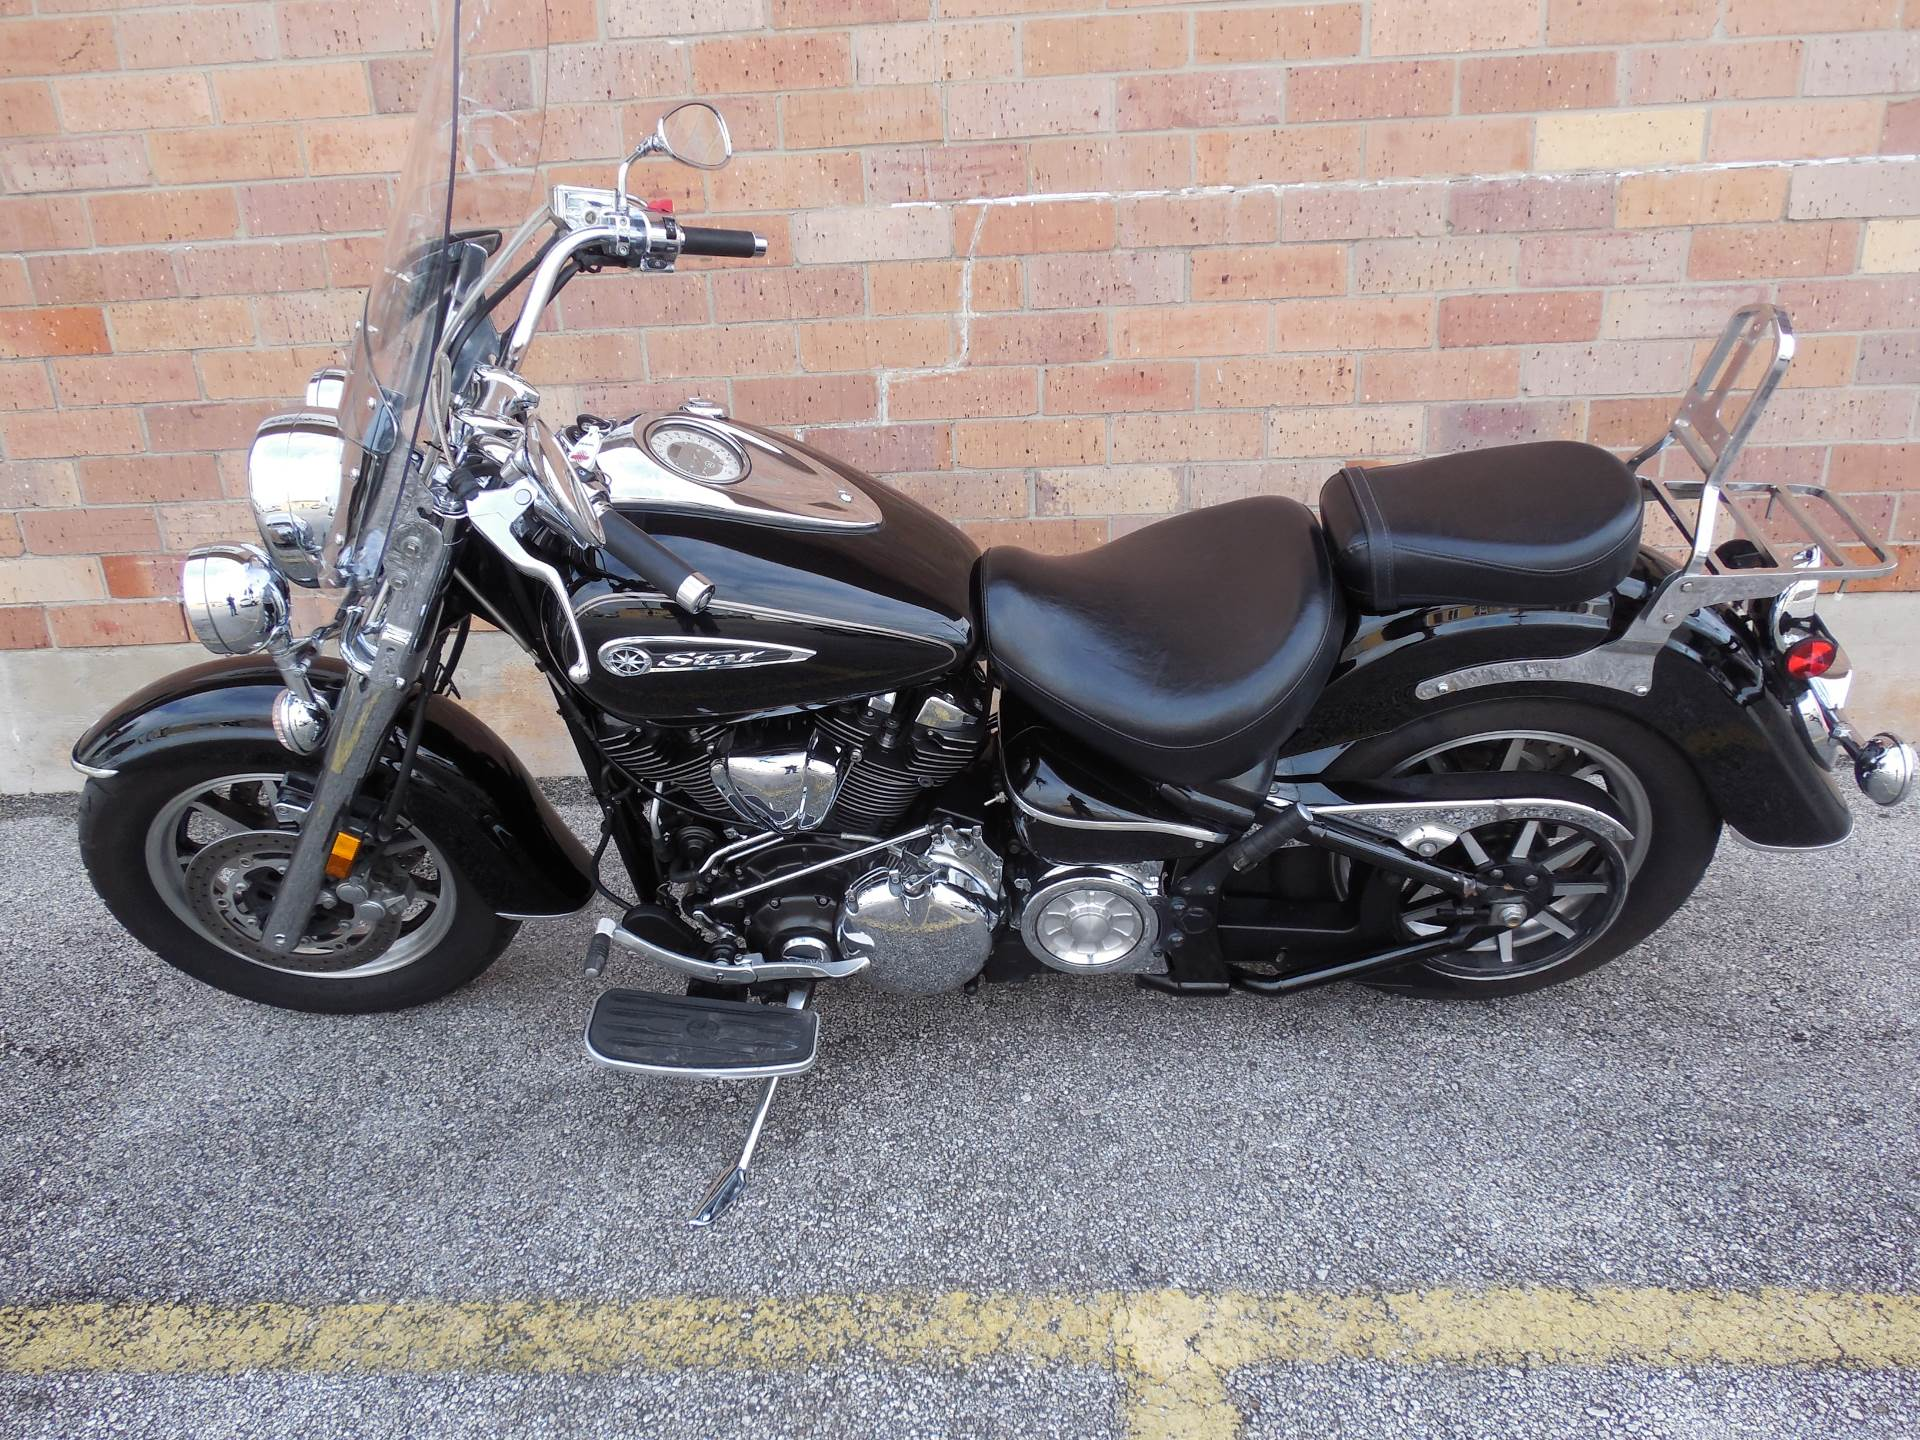 2012 Yamaha Road Star S in San Antonio, Texas